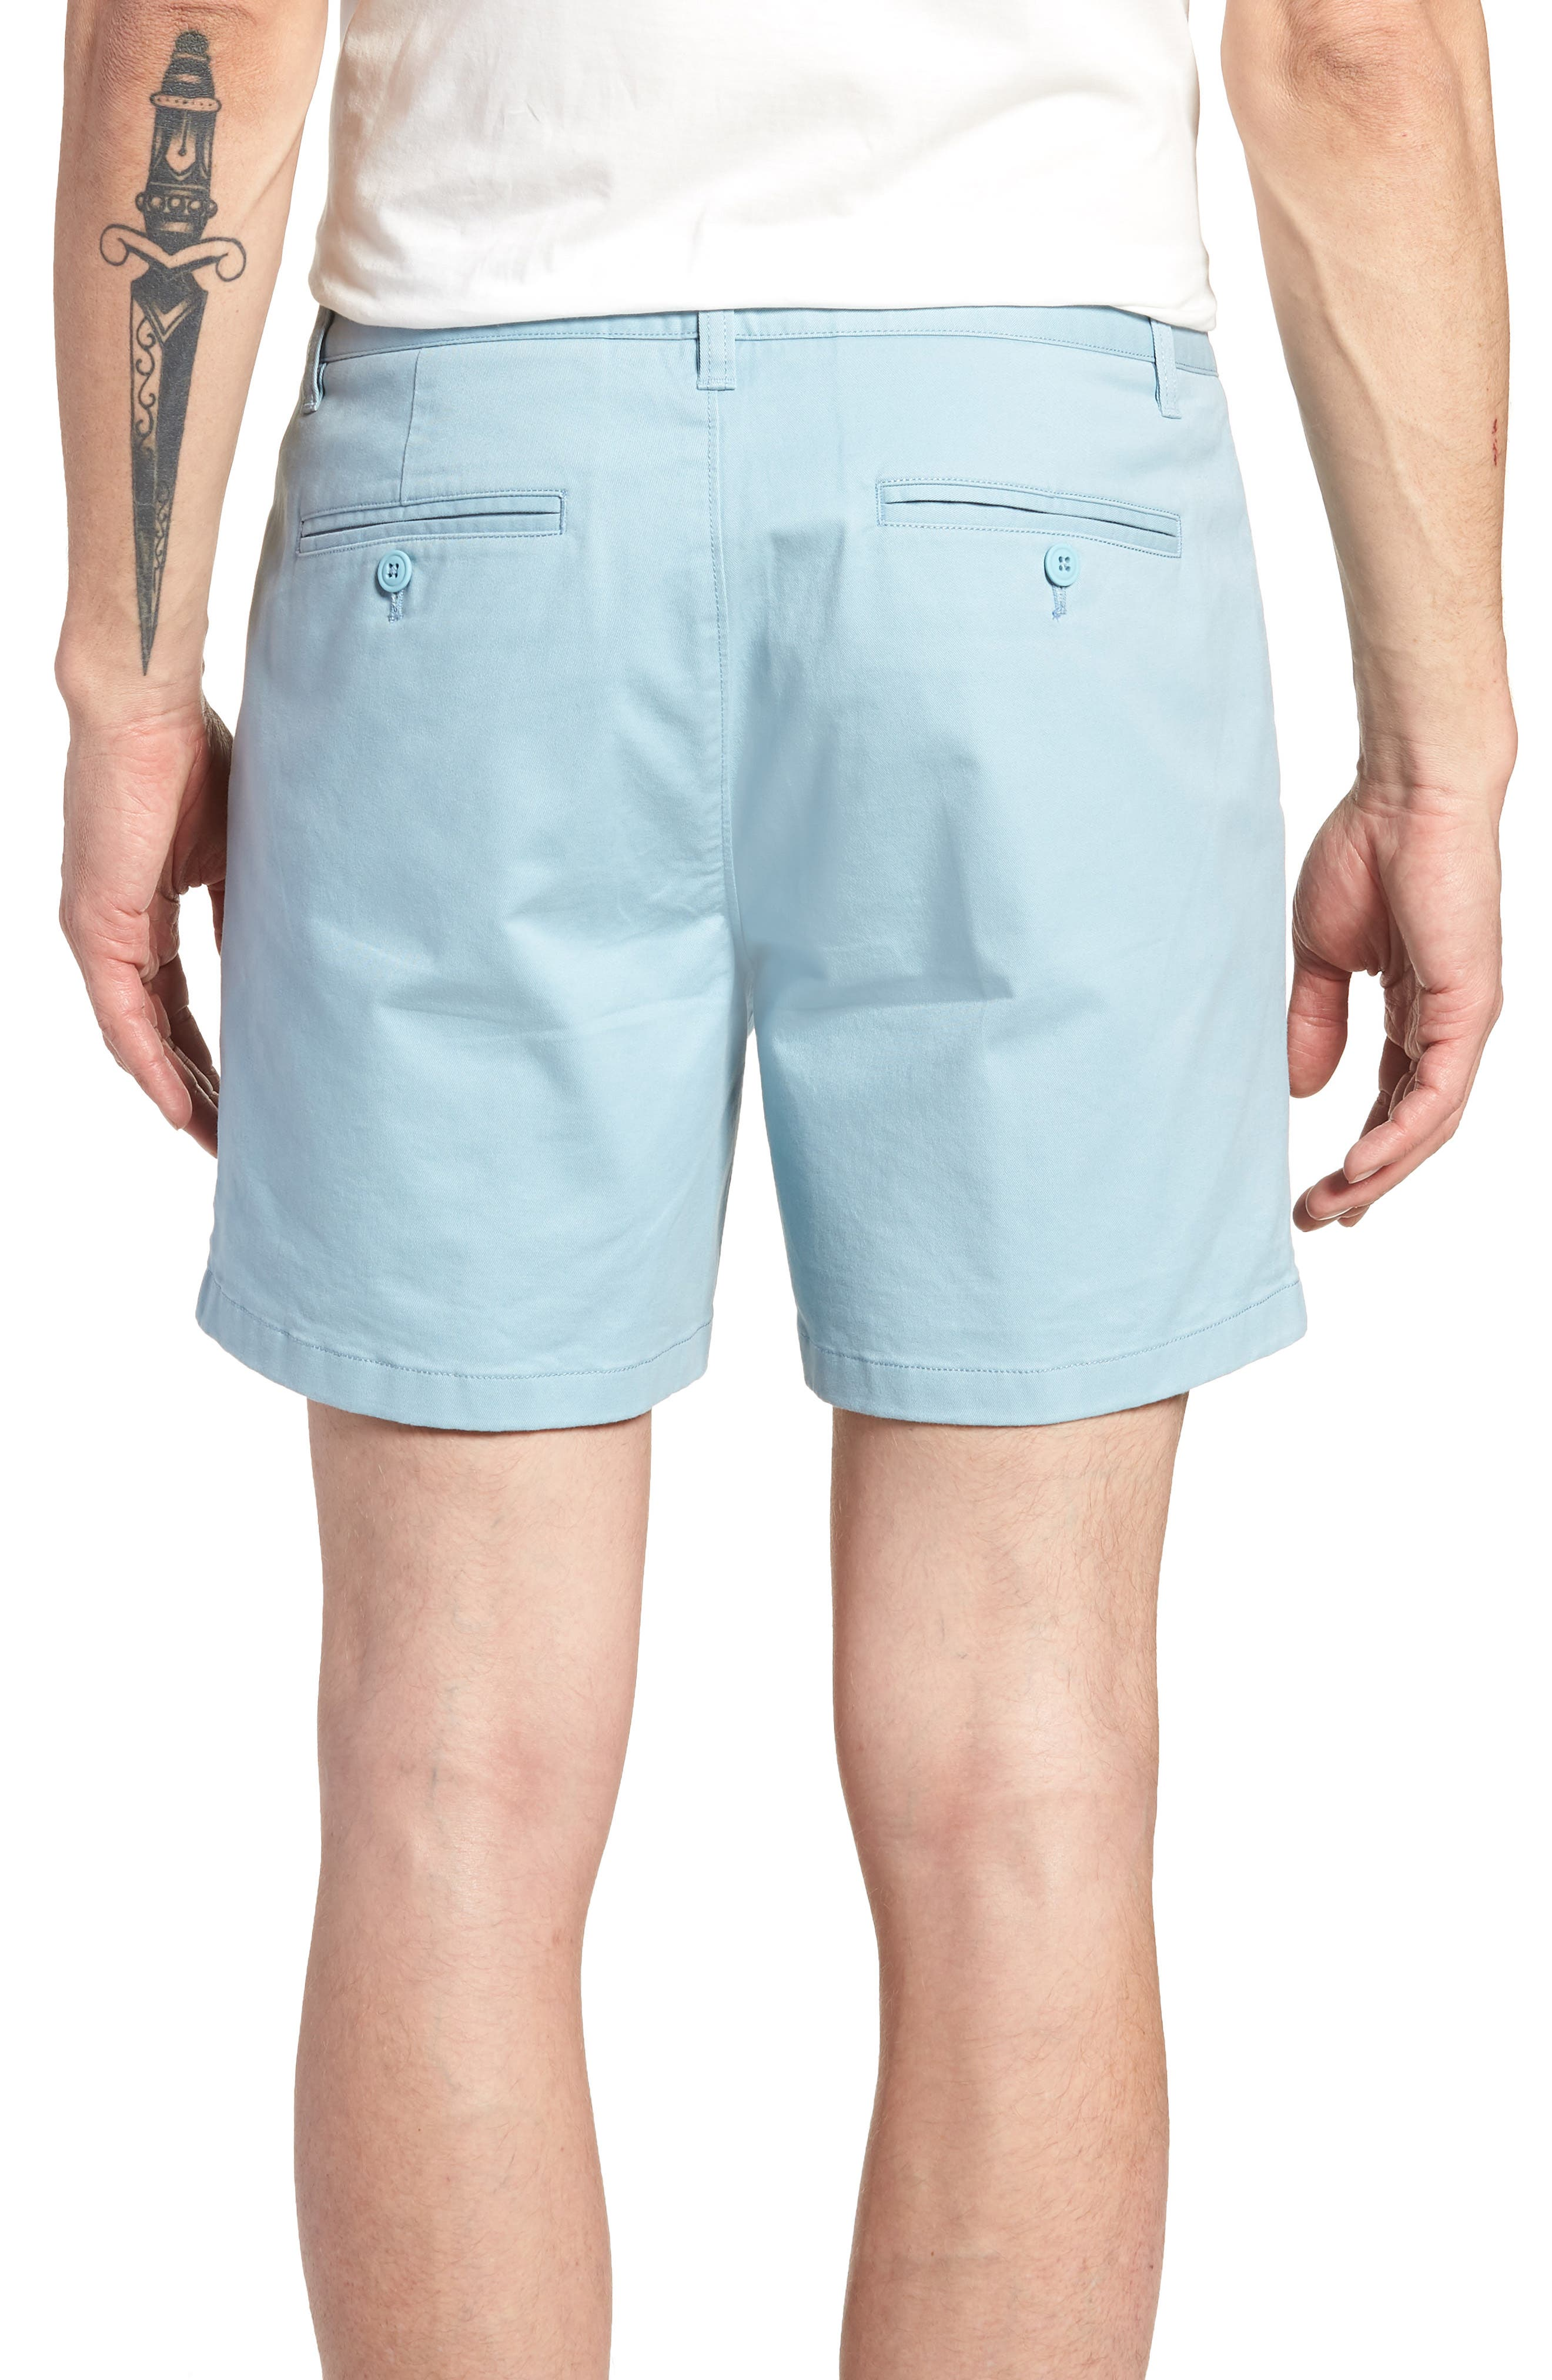 Stretch Washed Chino 5-Inch Shorts,                             Alternate thumbnail 41, color,